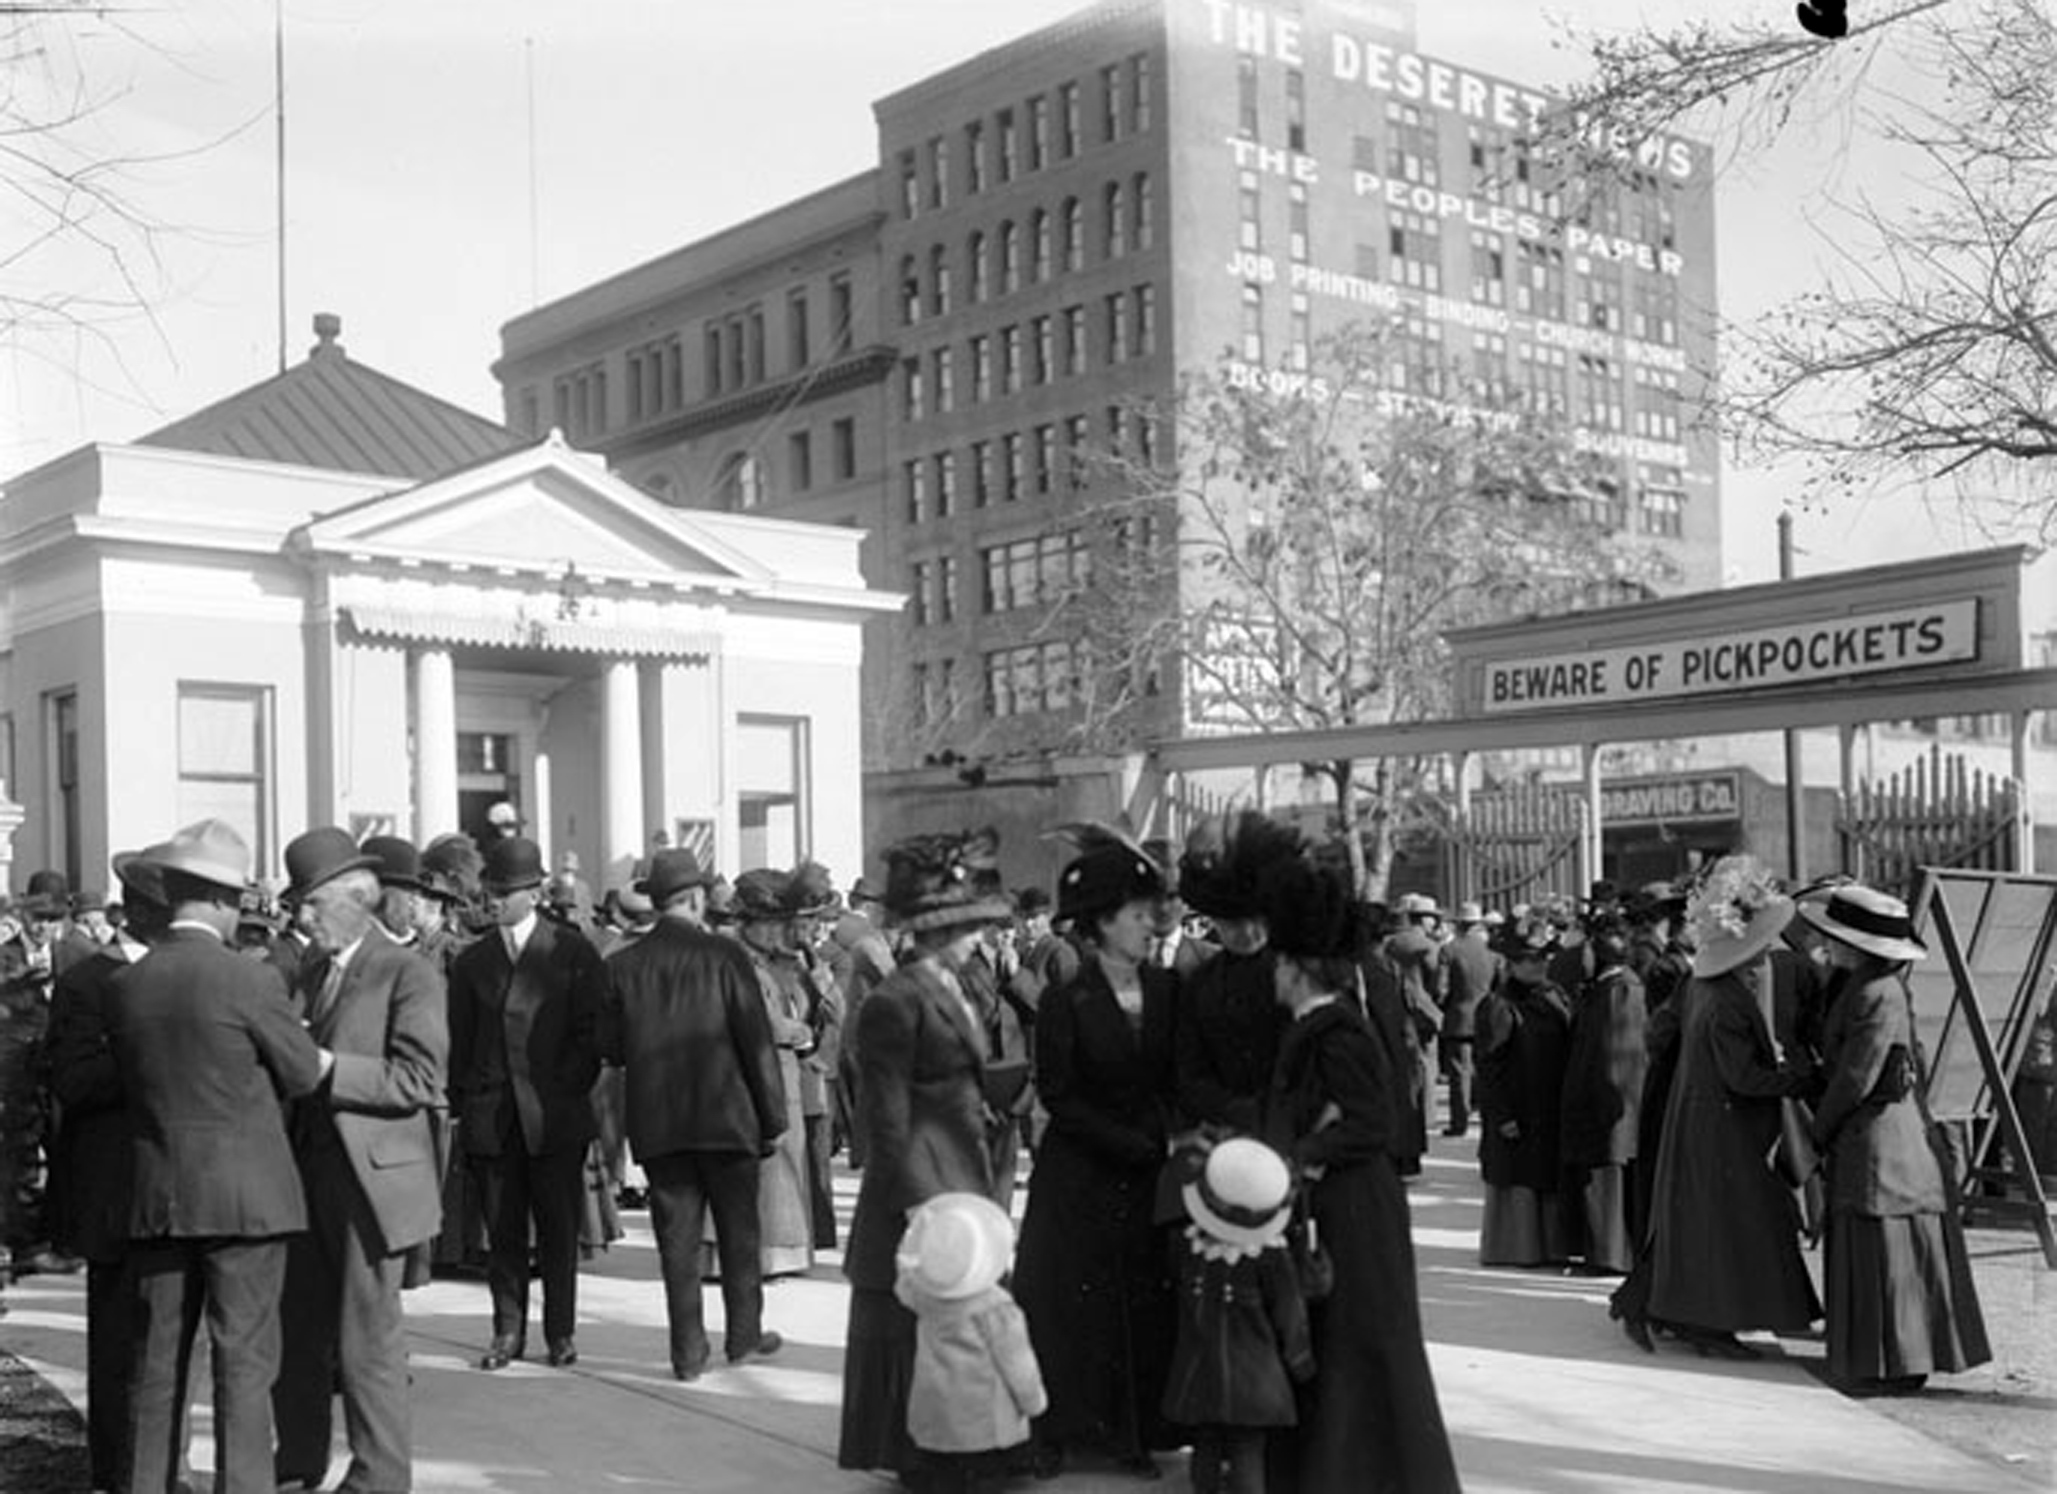 Crowds gather for General Conference in April 1911.